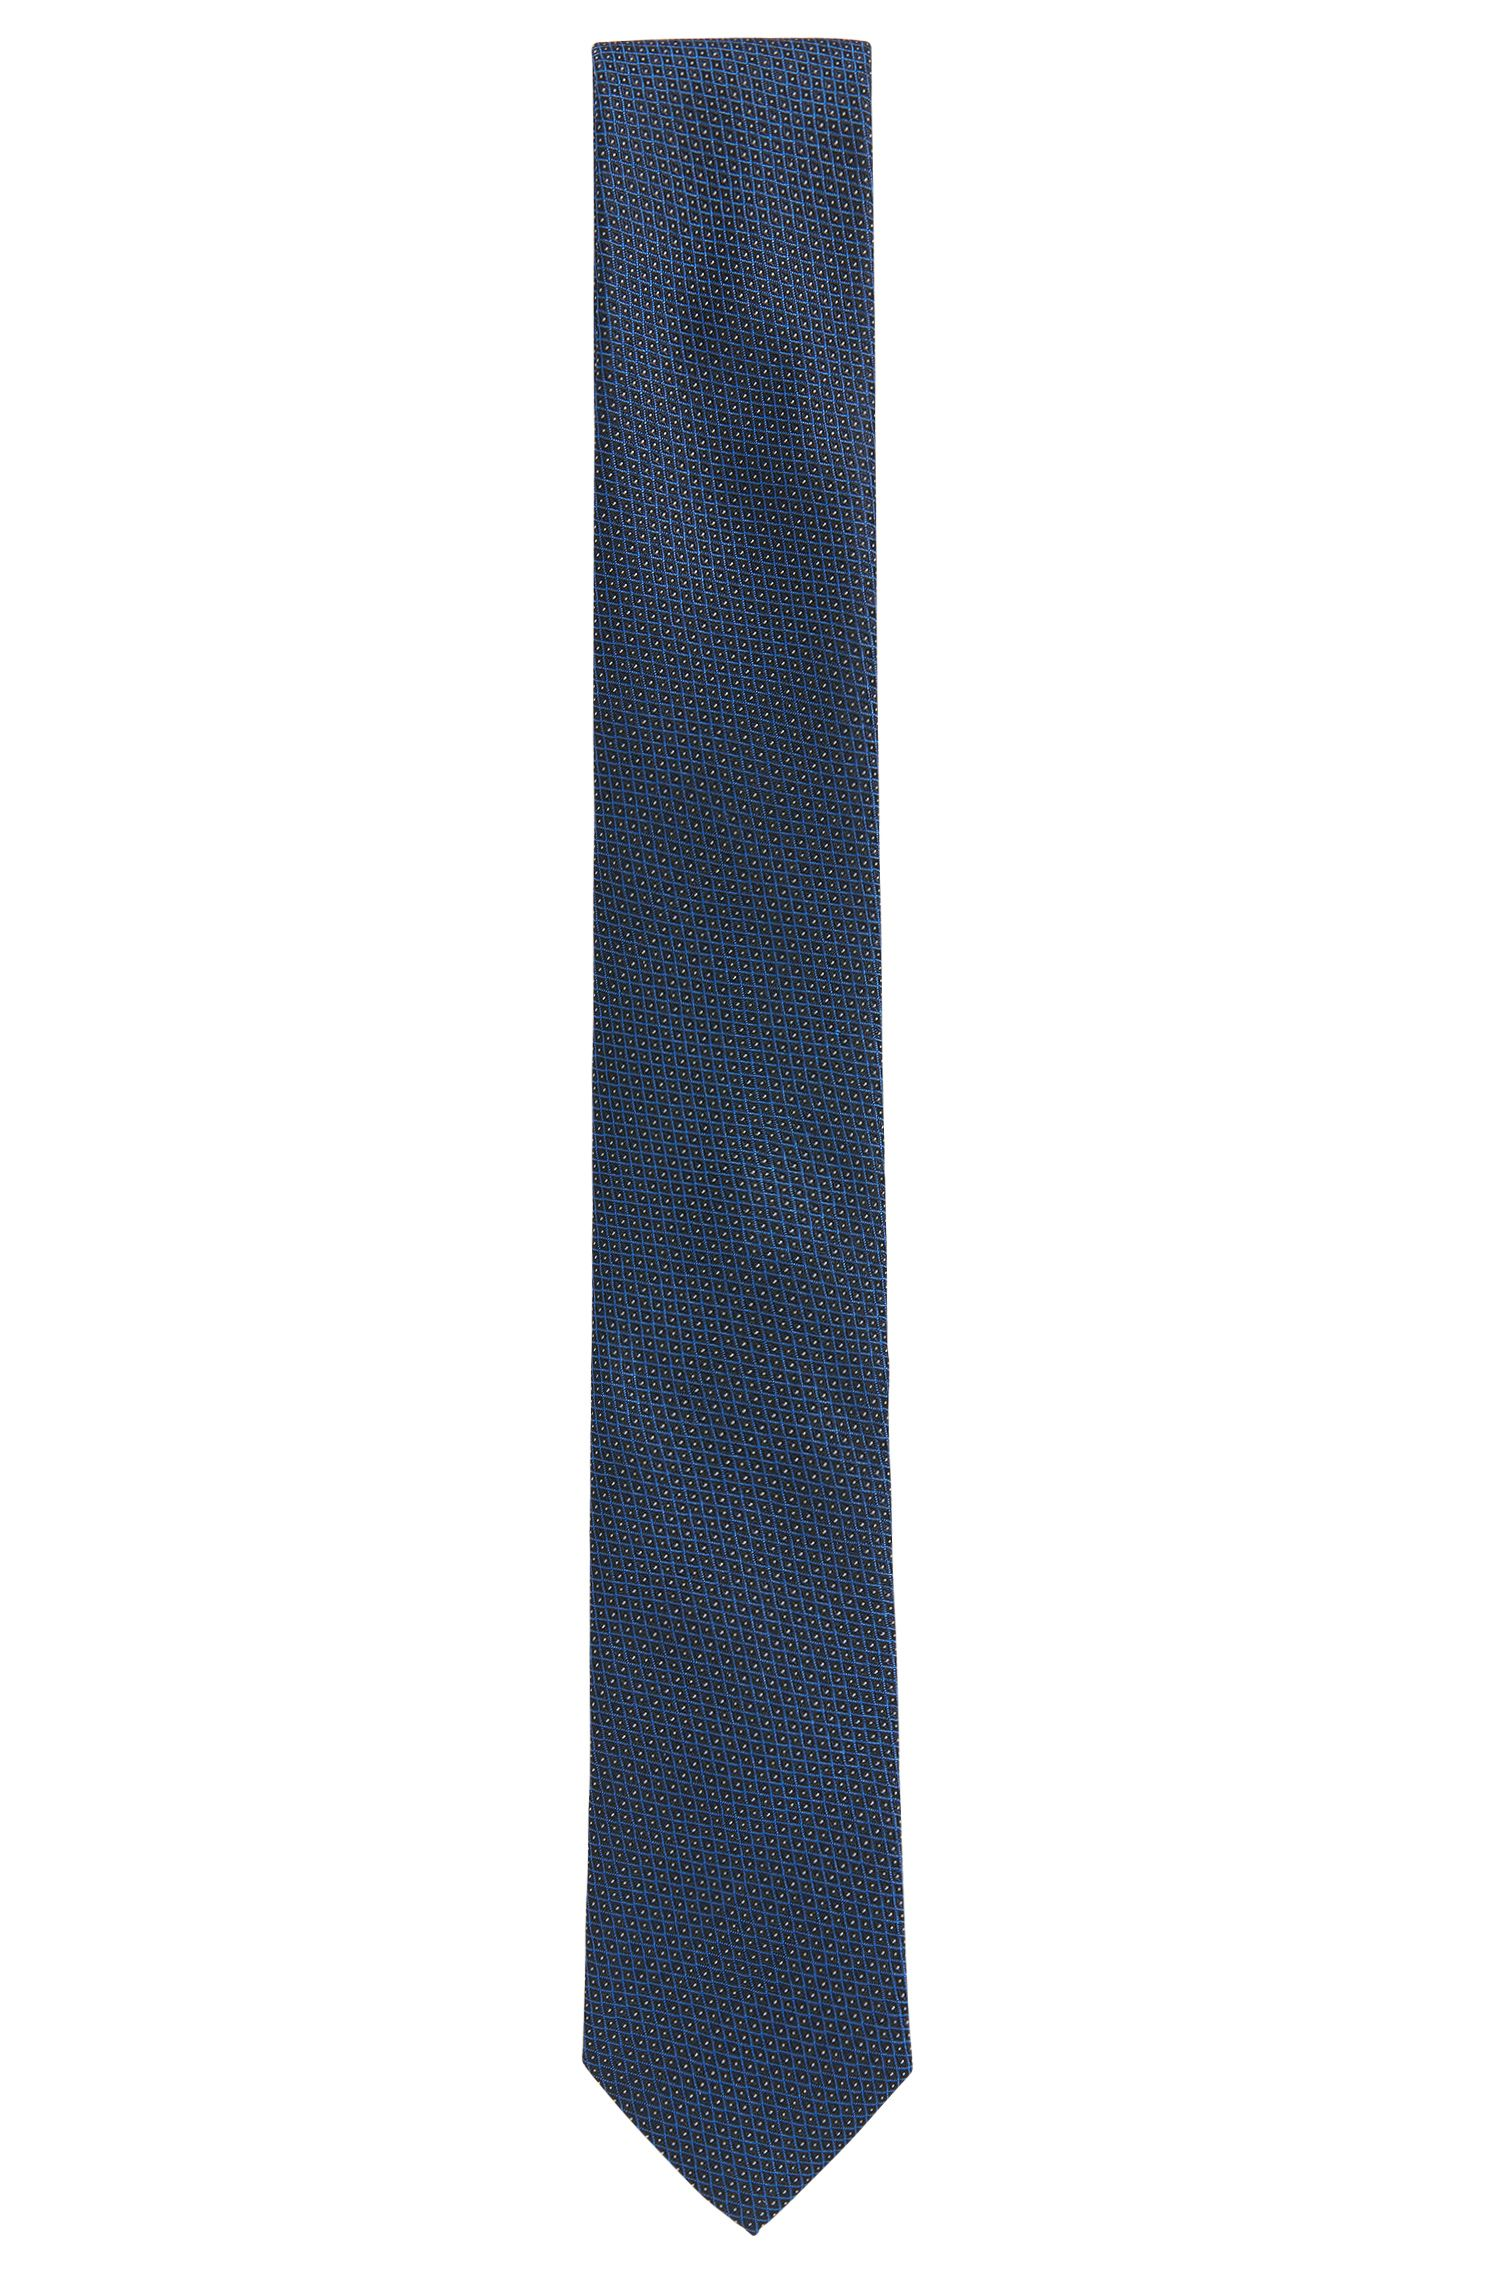 Patterned tie in fine silk jacquard